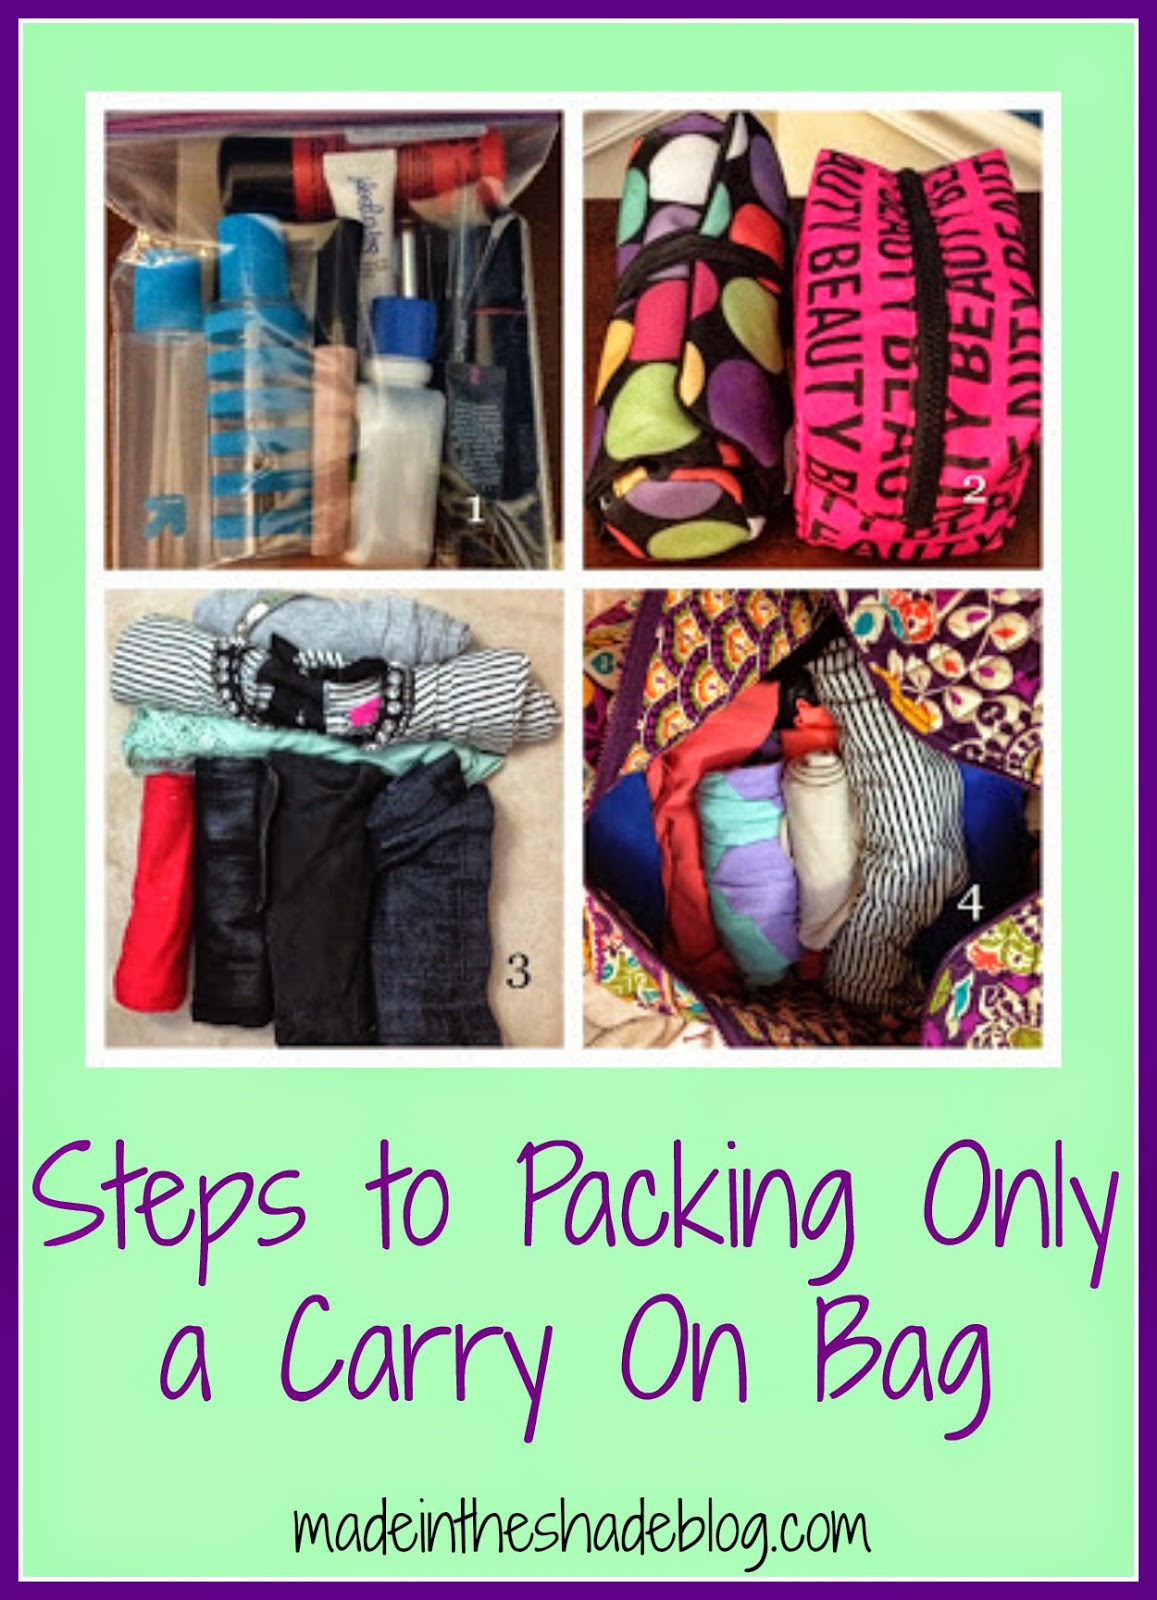 How to only pack a carry on bag